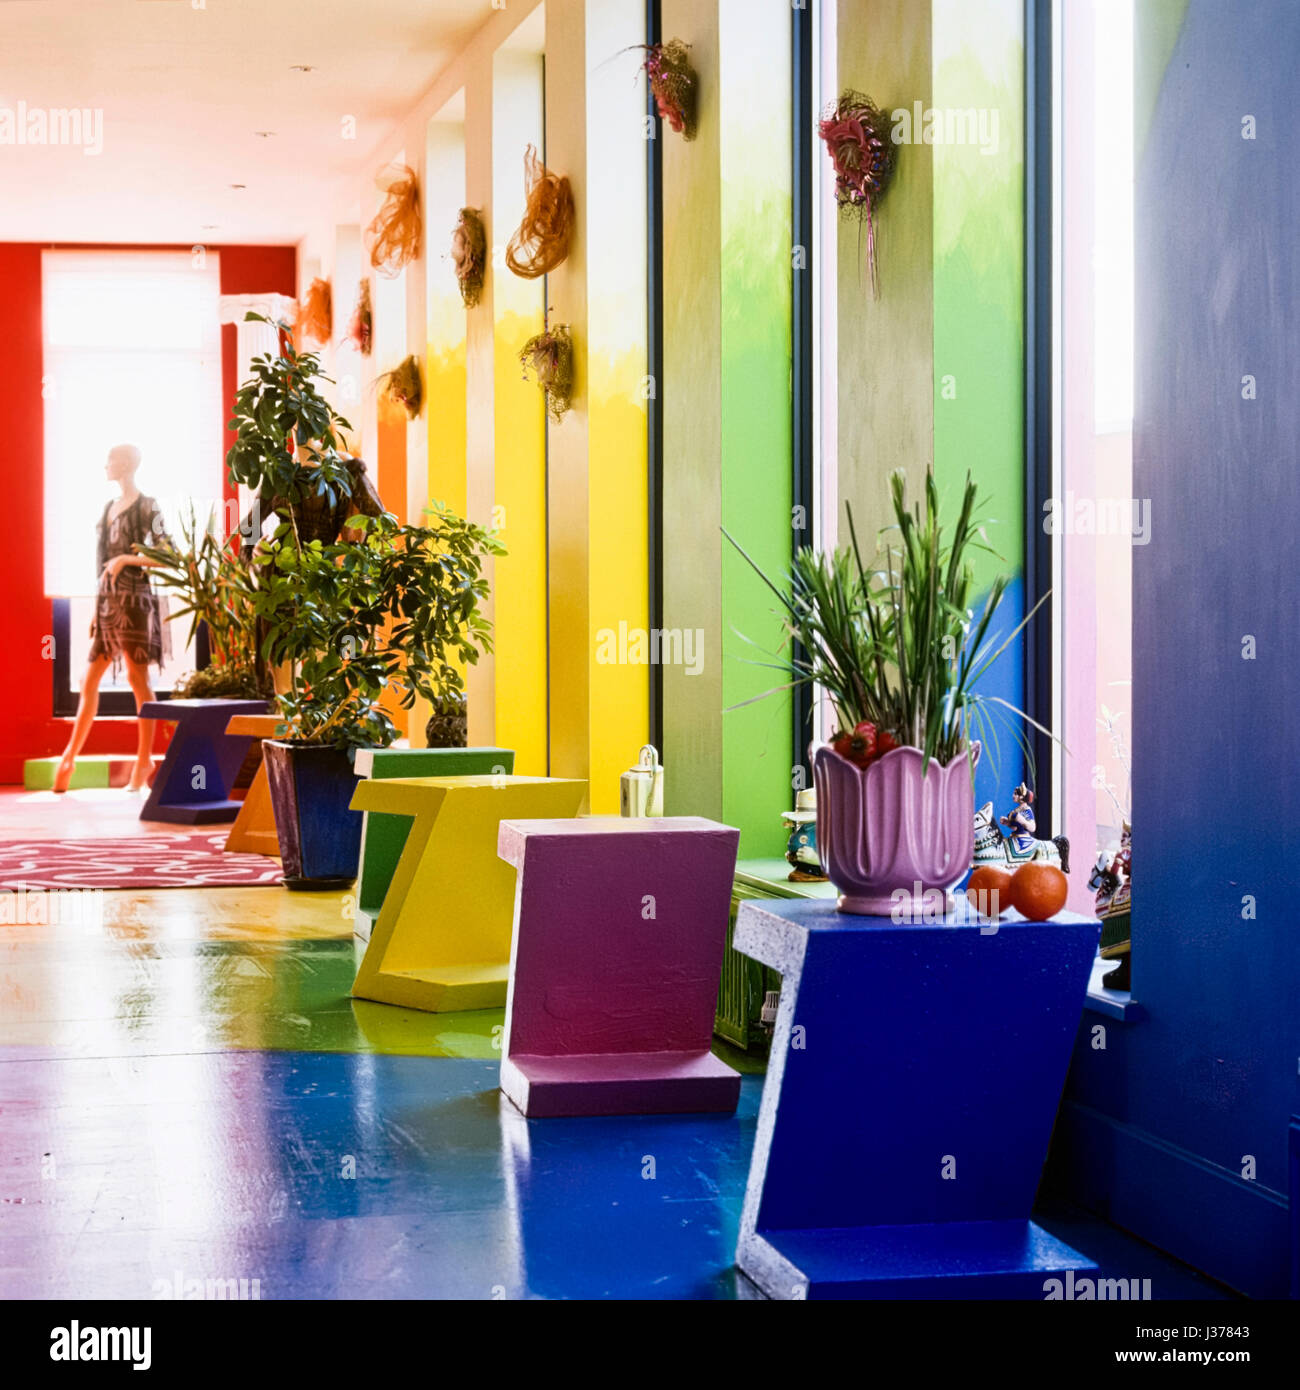 Colorful side tables with pot plants. - Stock Image